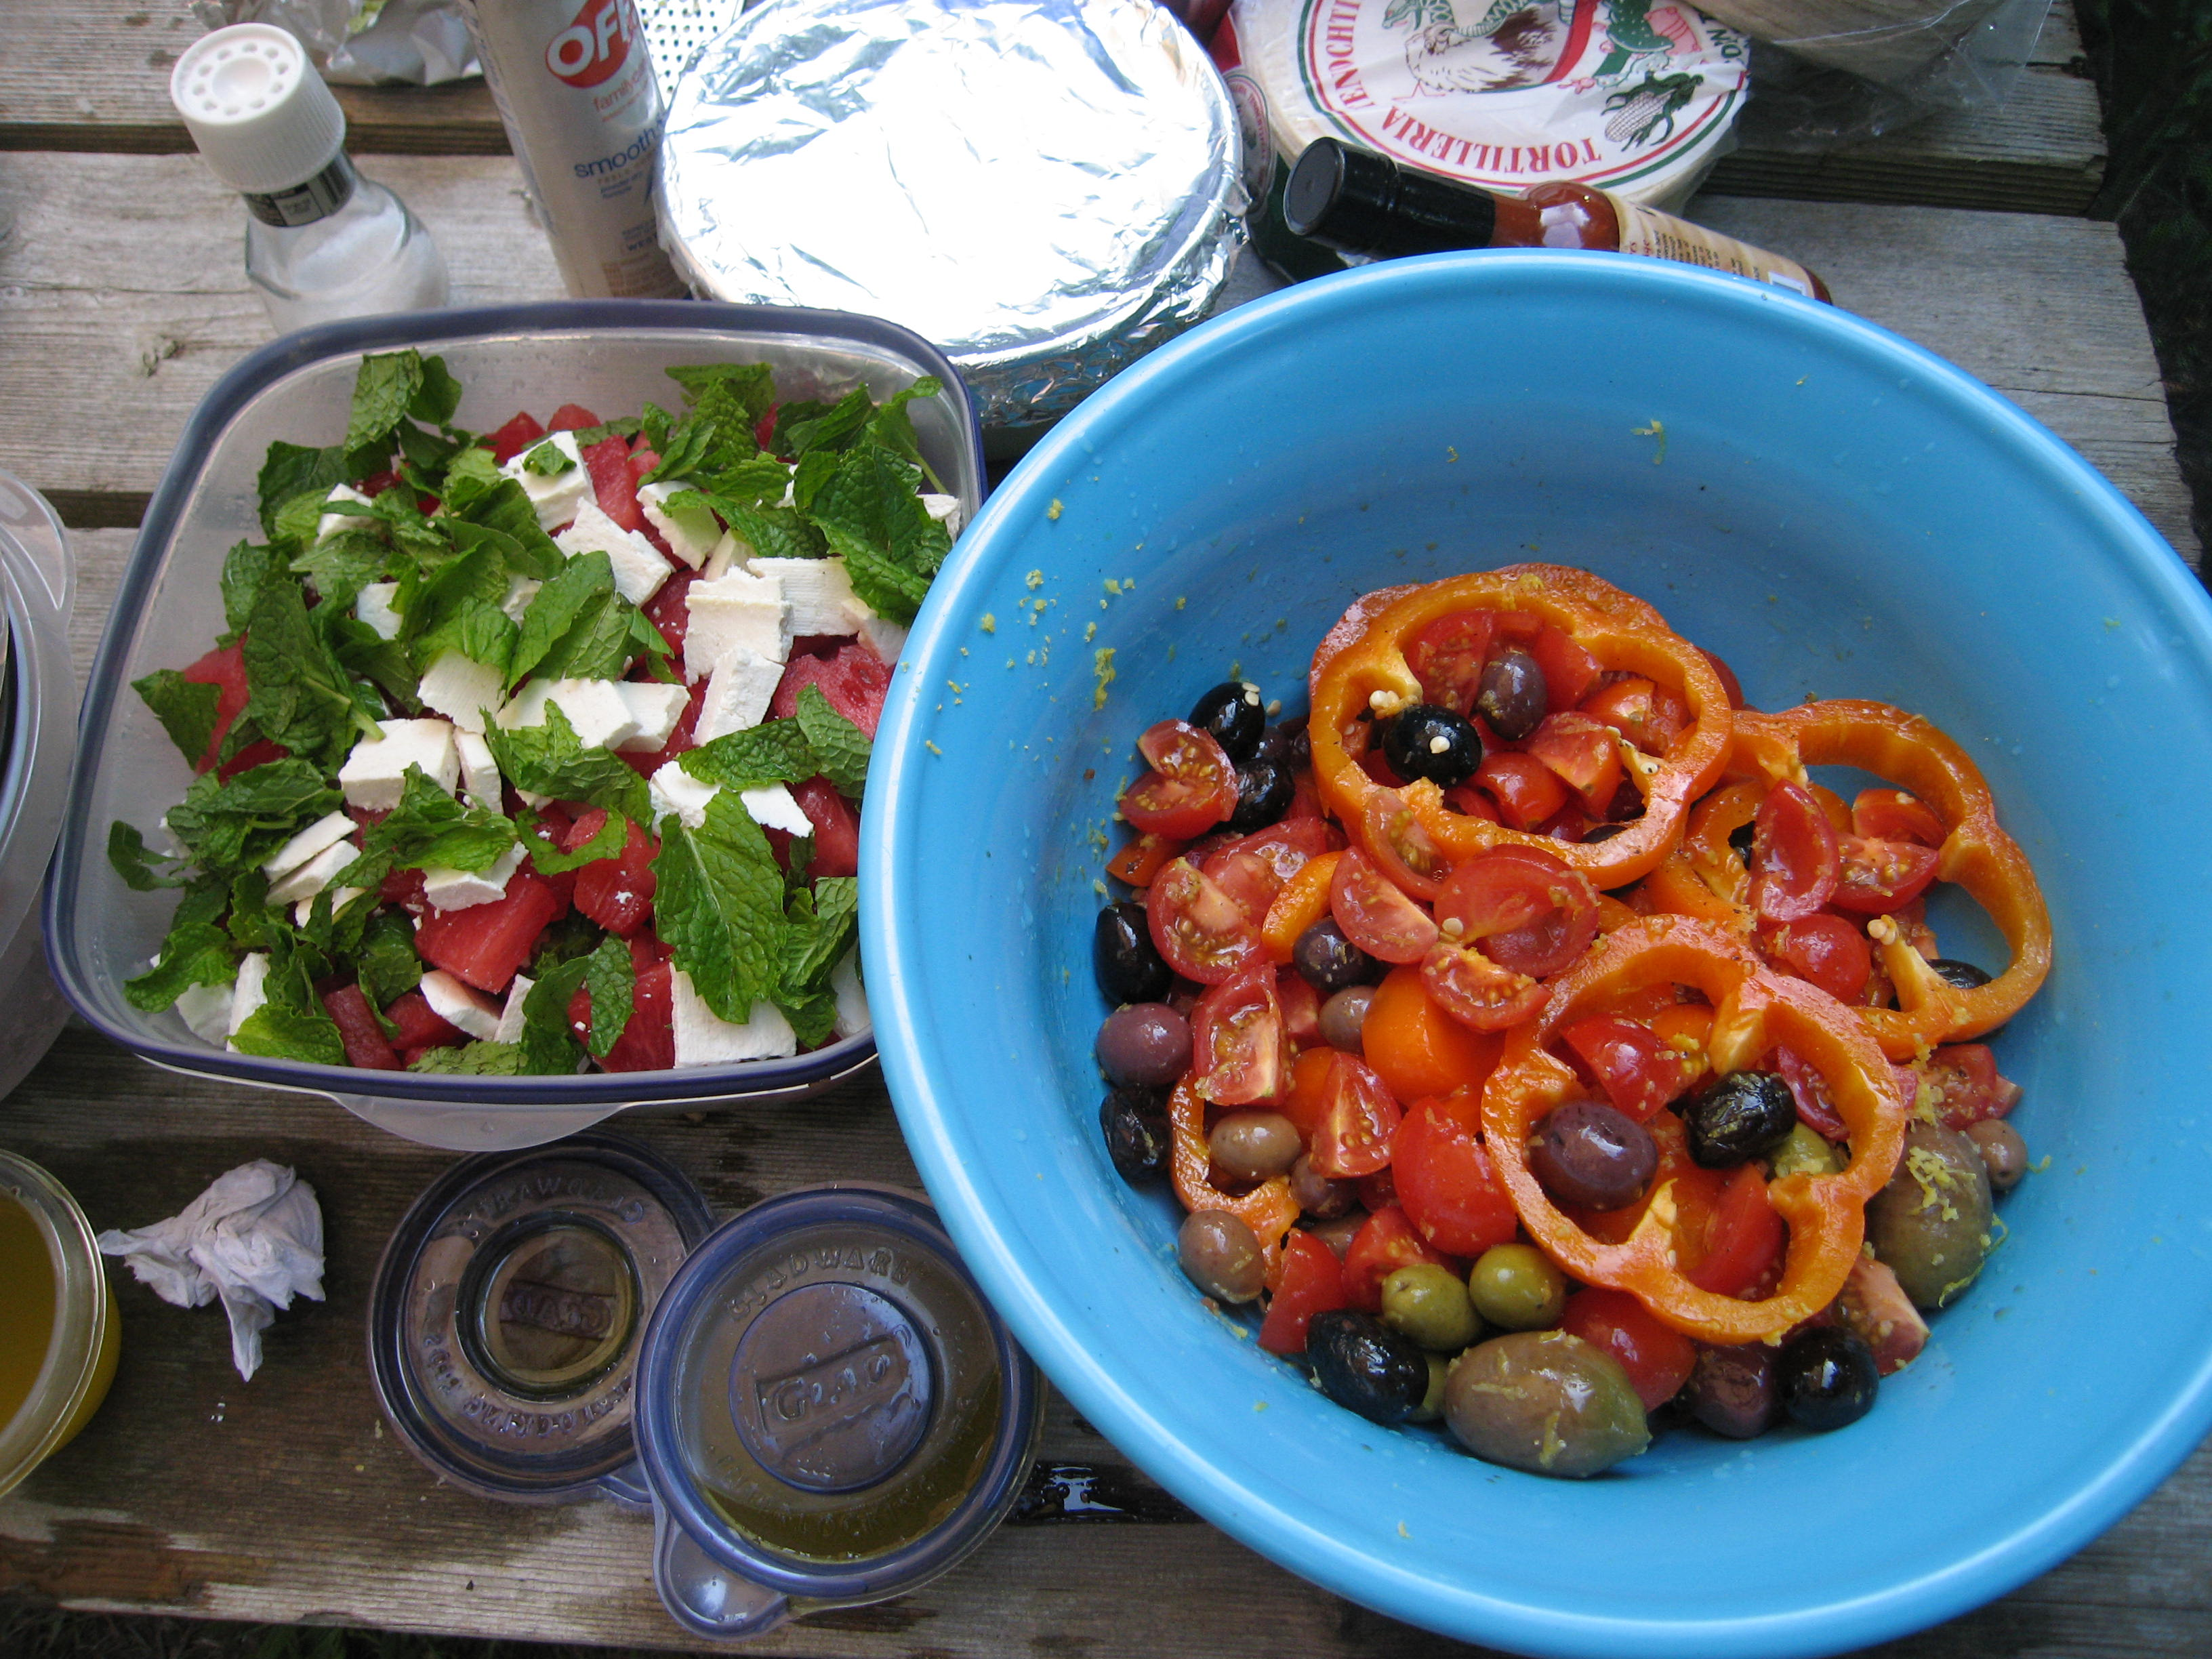 Watermelon salad and Tomoato and olives with lemon zest